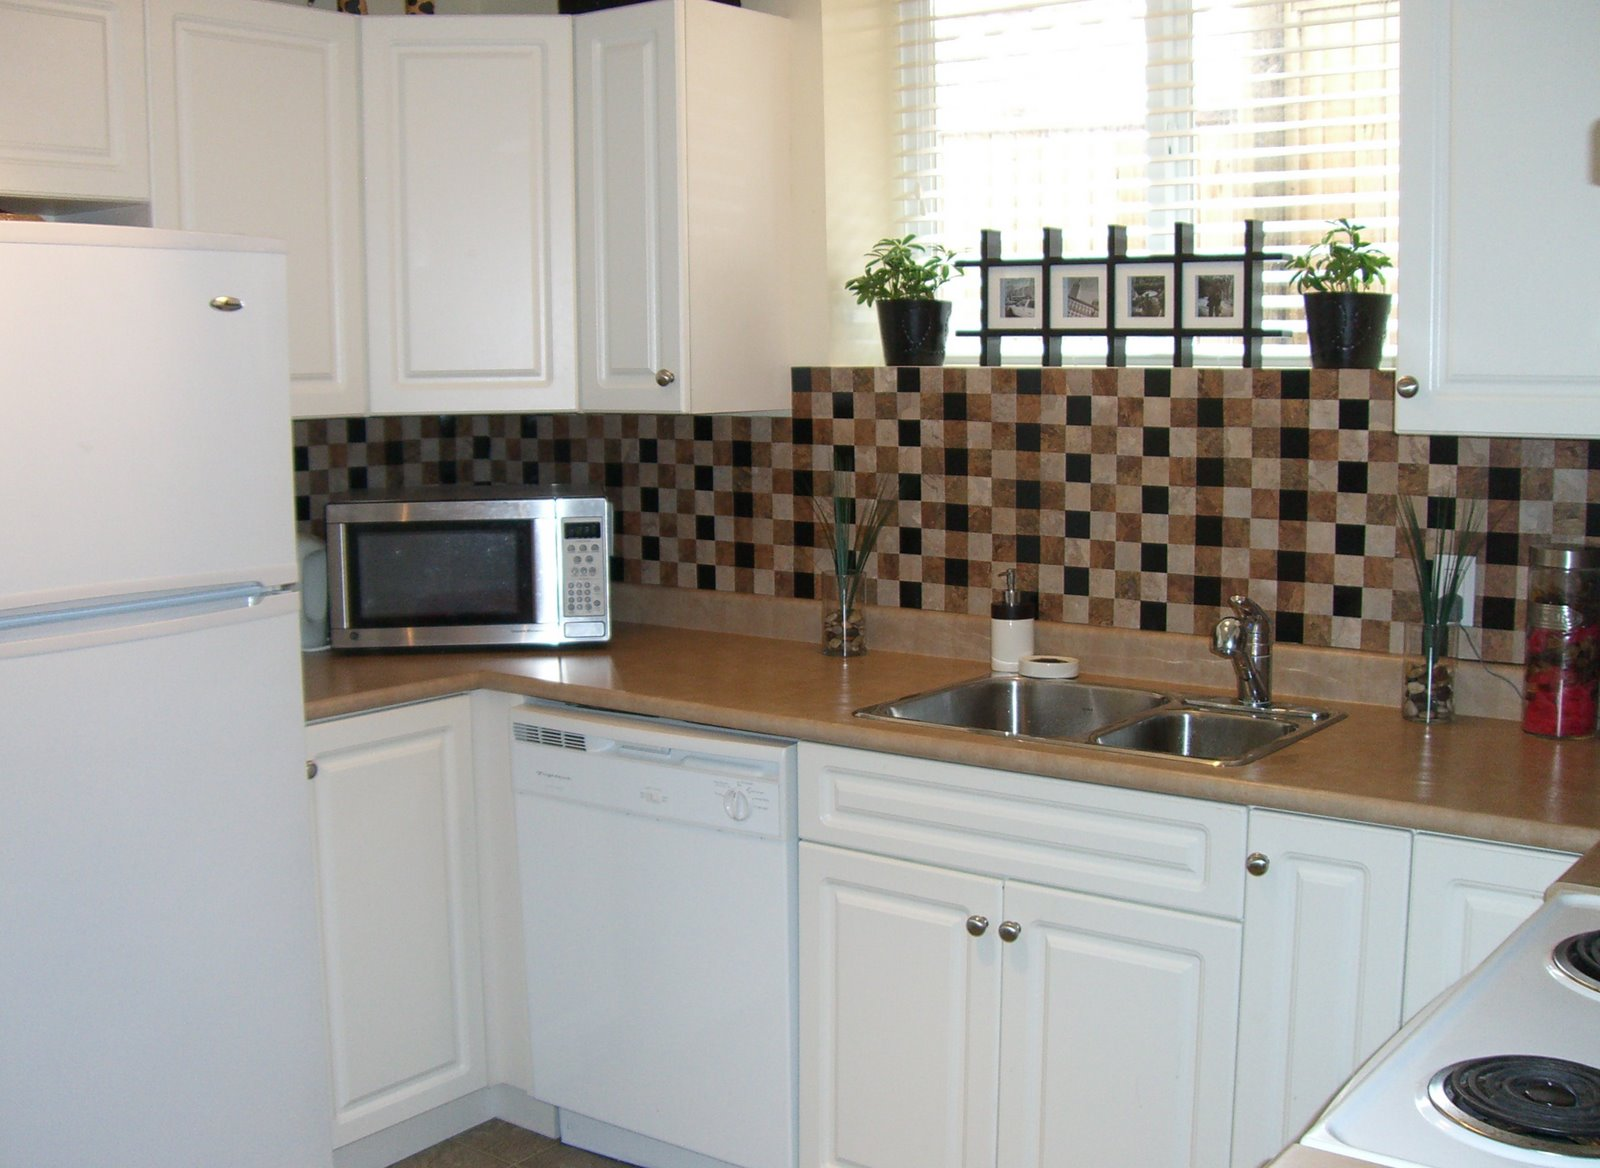 48 Vinyl Wallpaper For Kitchen Backsplash On